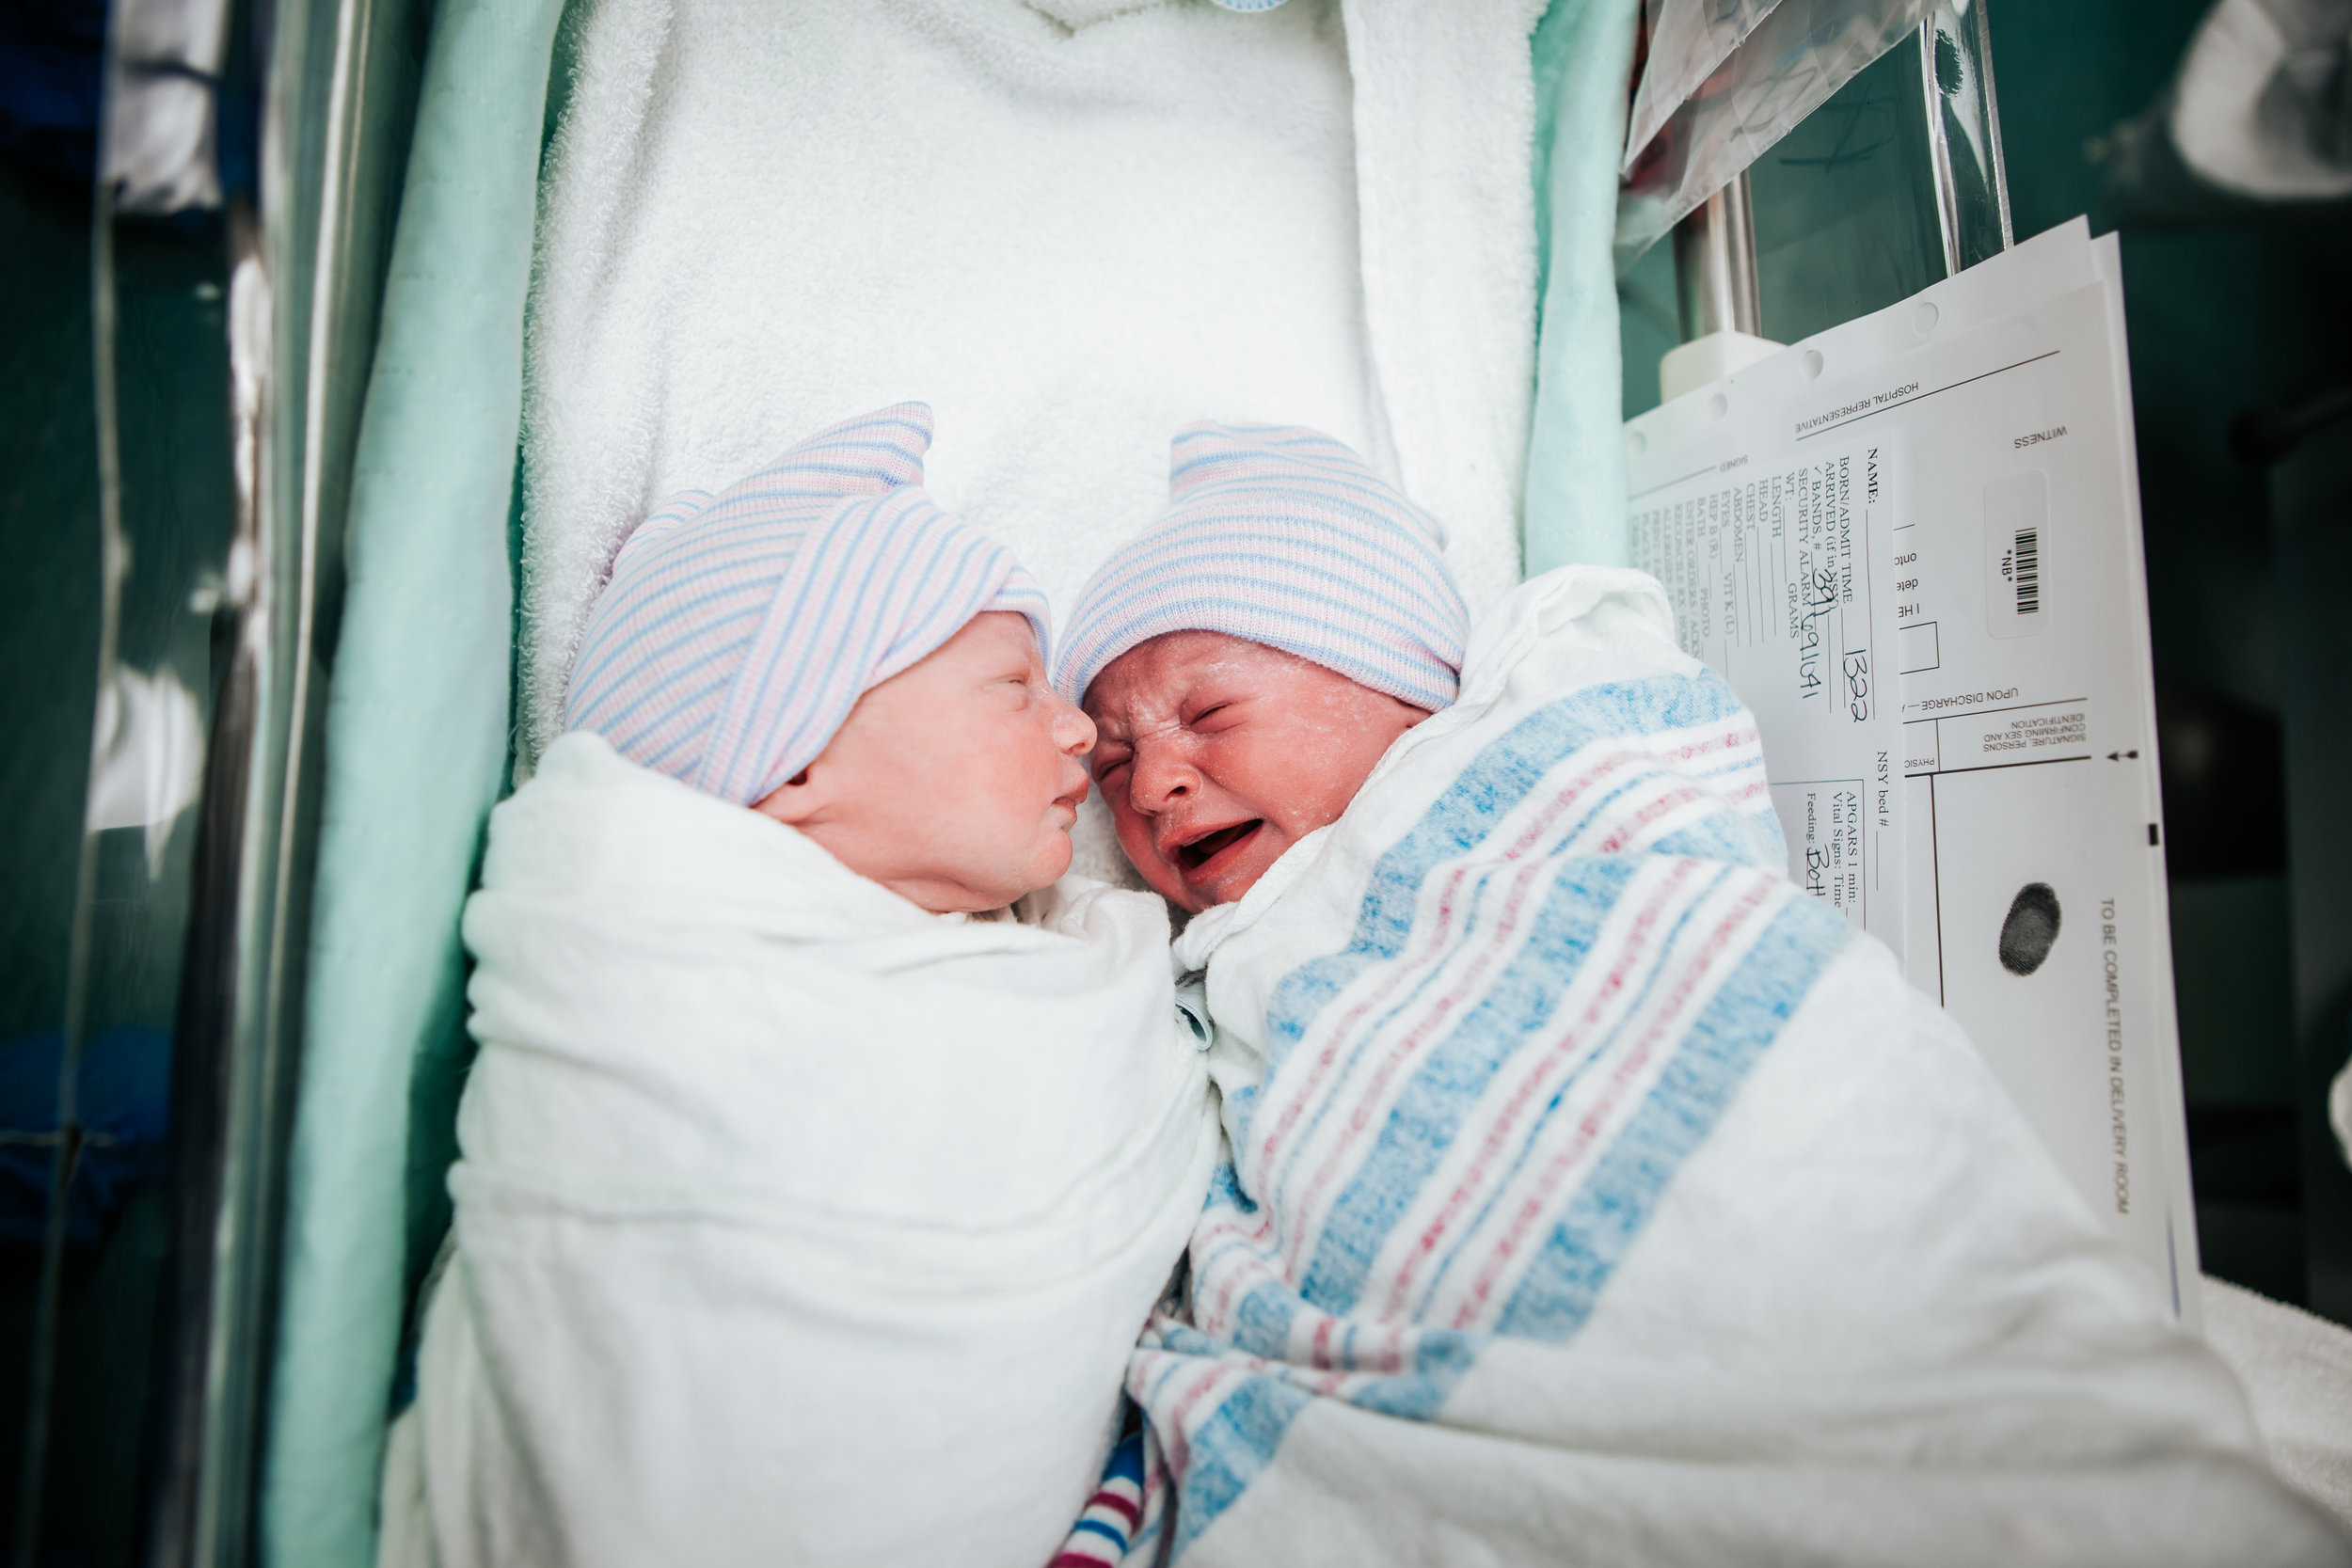 Twins born vaginally in the OR! With Dr Whitaker at Fort Walton Beach Medical Center.